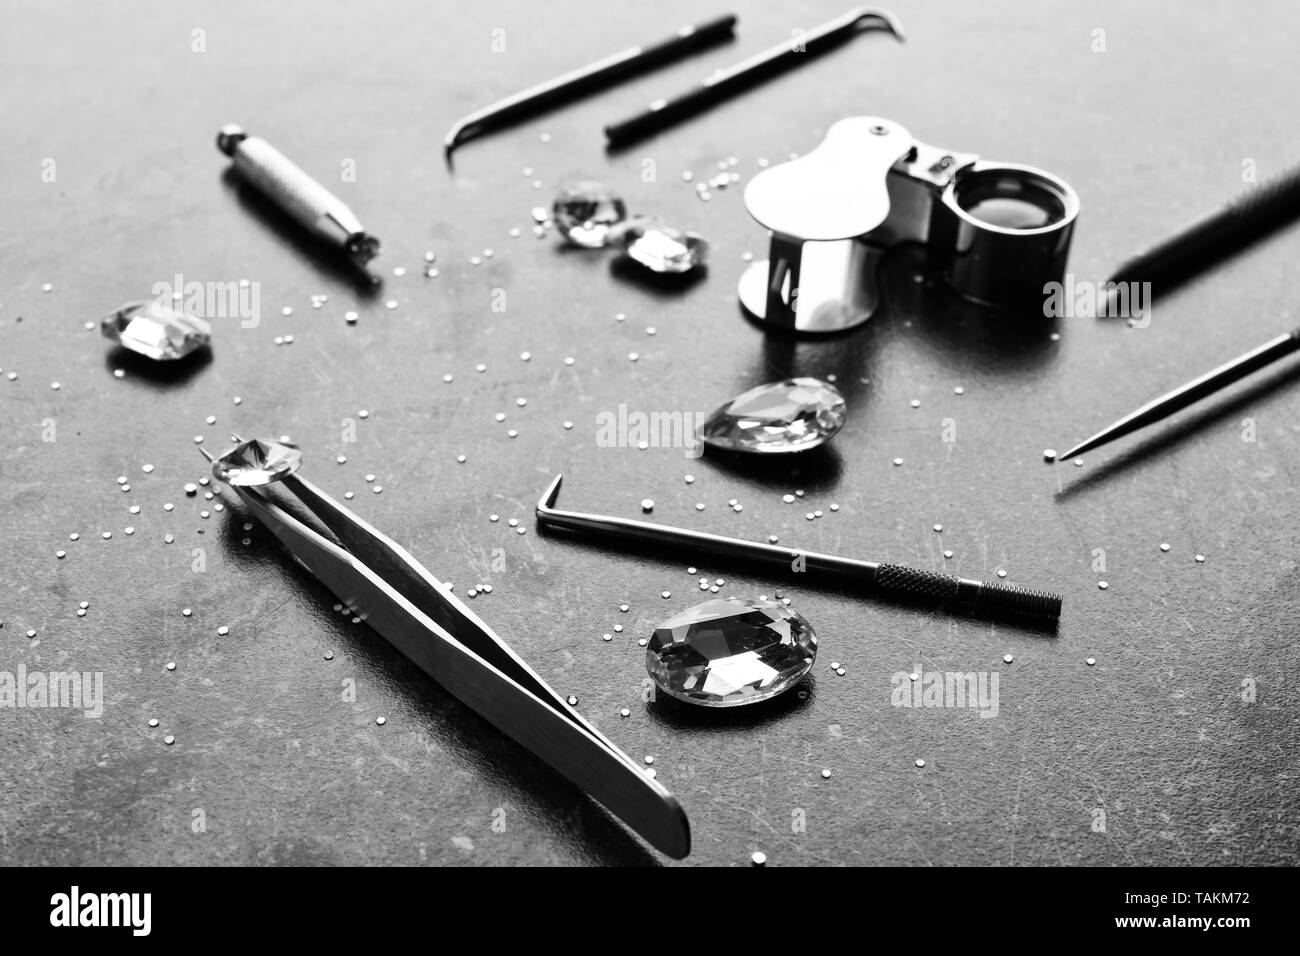 Precious stones and jeweler's tools on grey background - Stock Image